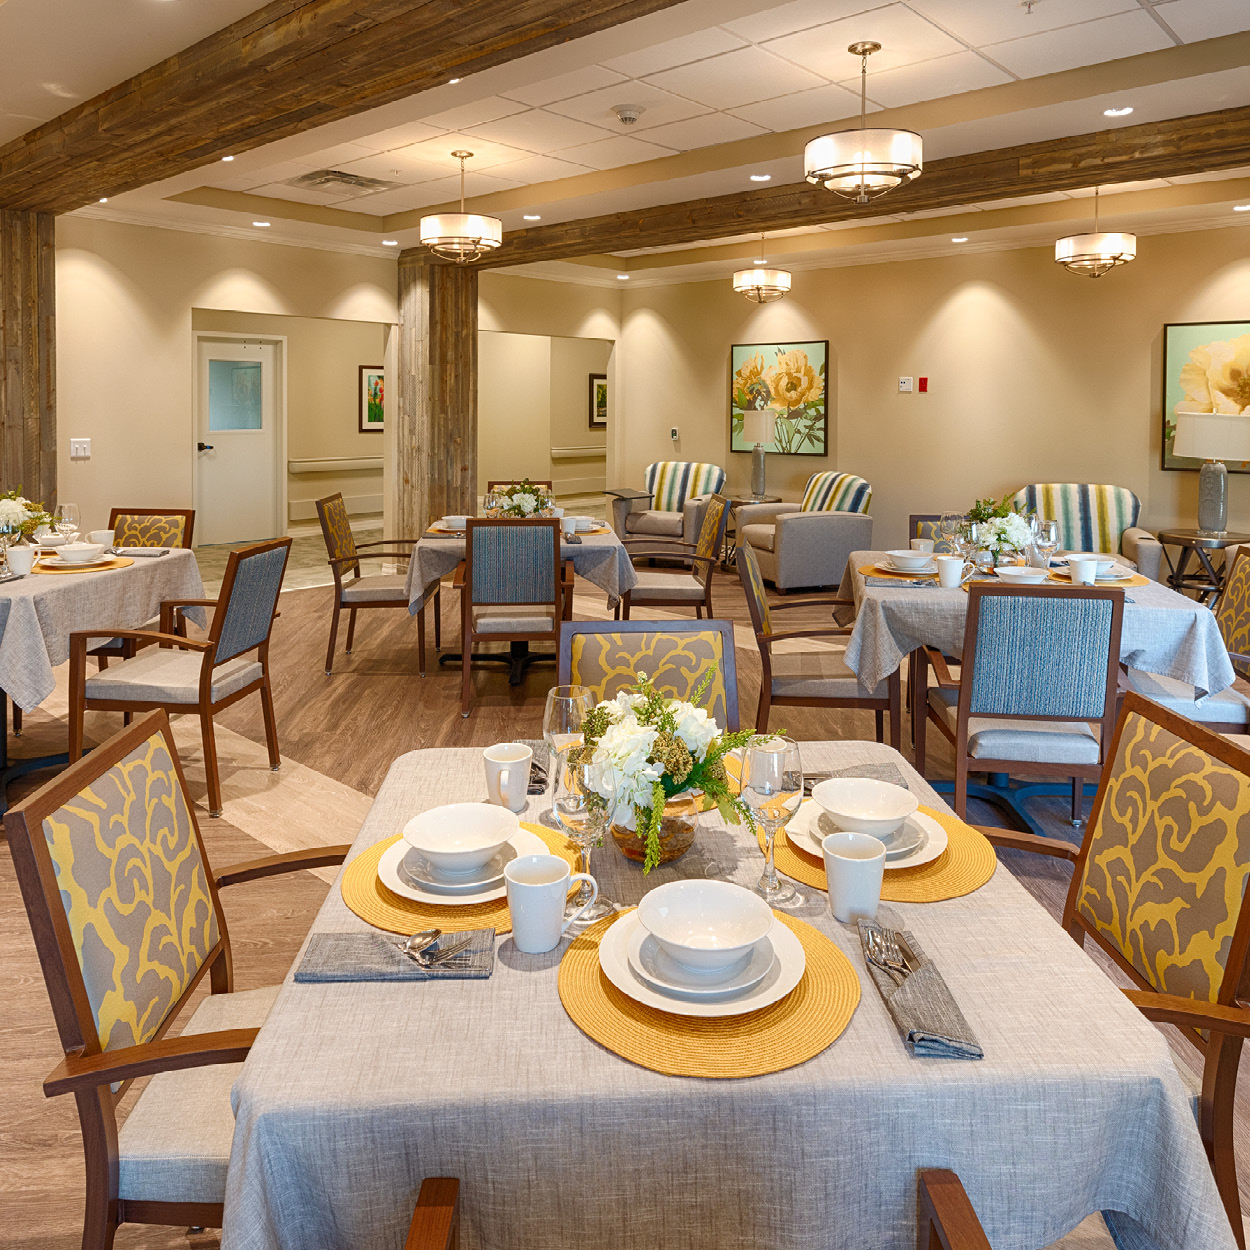 Stonerise Charleston dining room tables with place settings and floral centerpieces